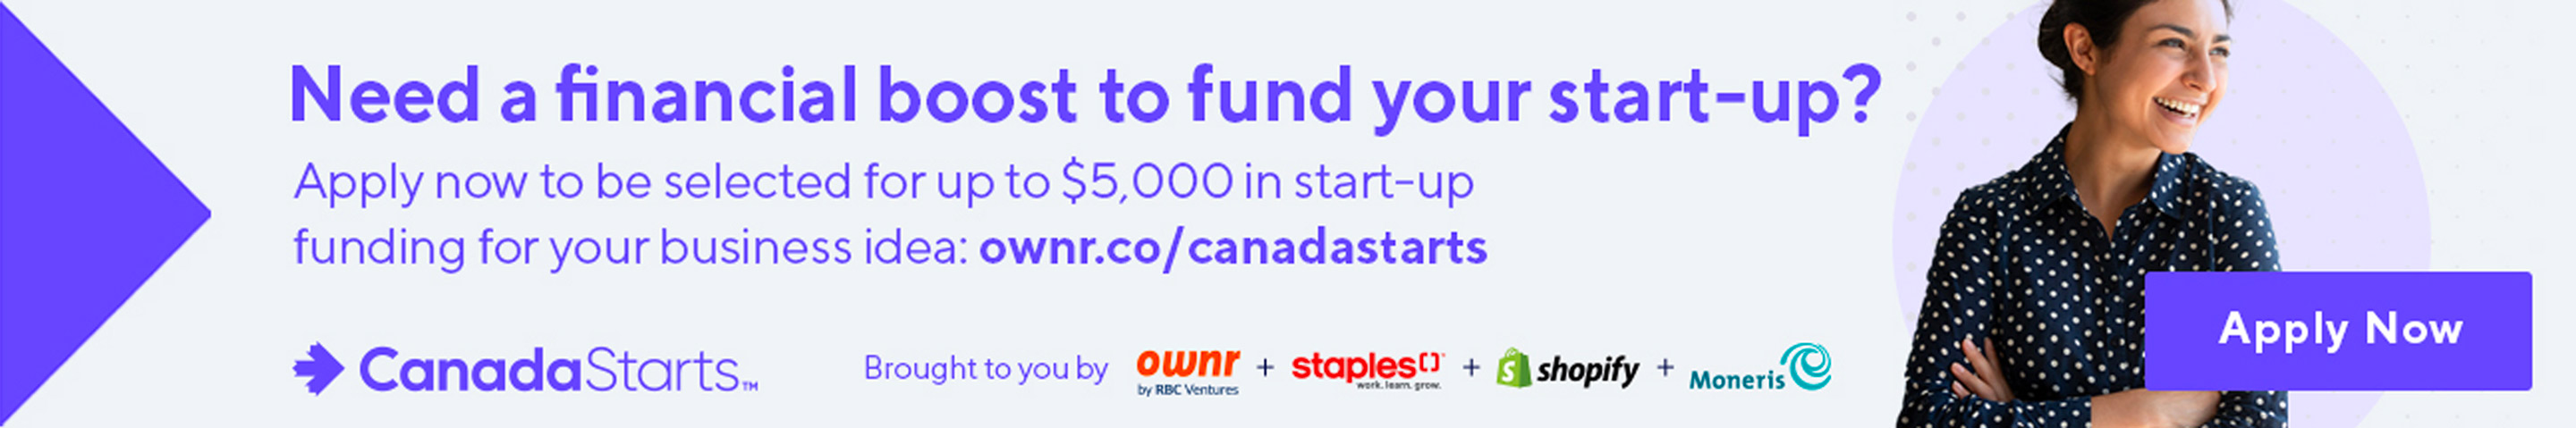 CanadaStarts $5,000 to launch your dream business